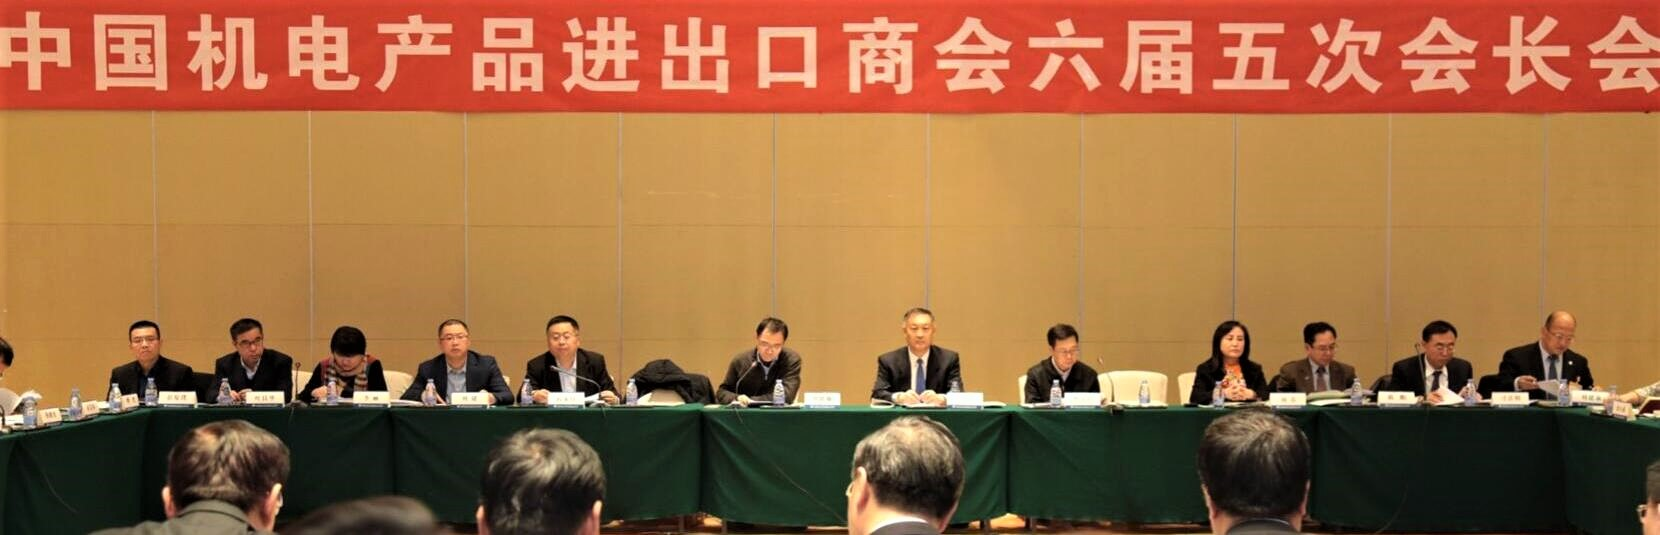 The 5th Session of the 6th CCCME Vice-President Meeting Held in Beijing